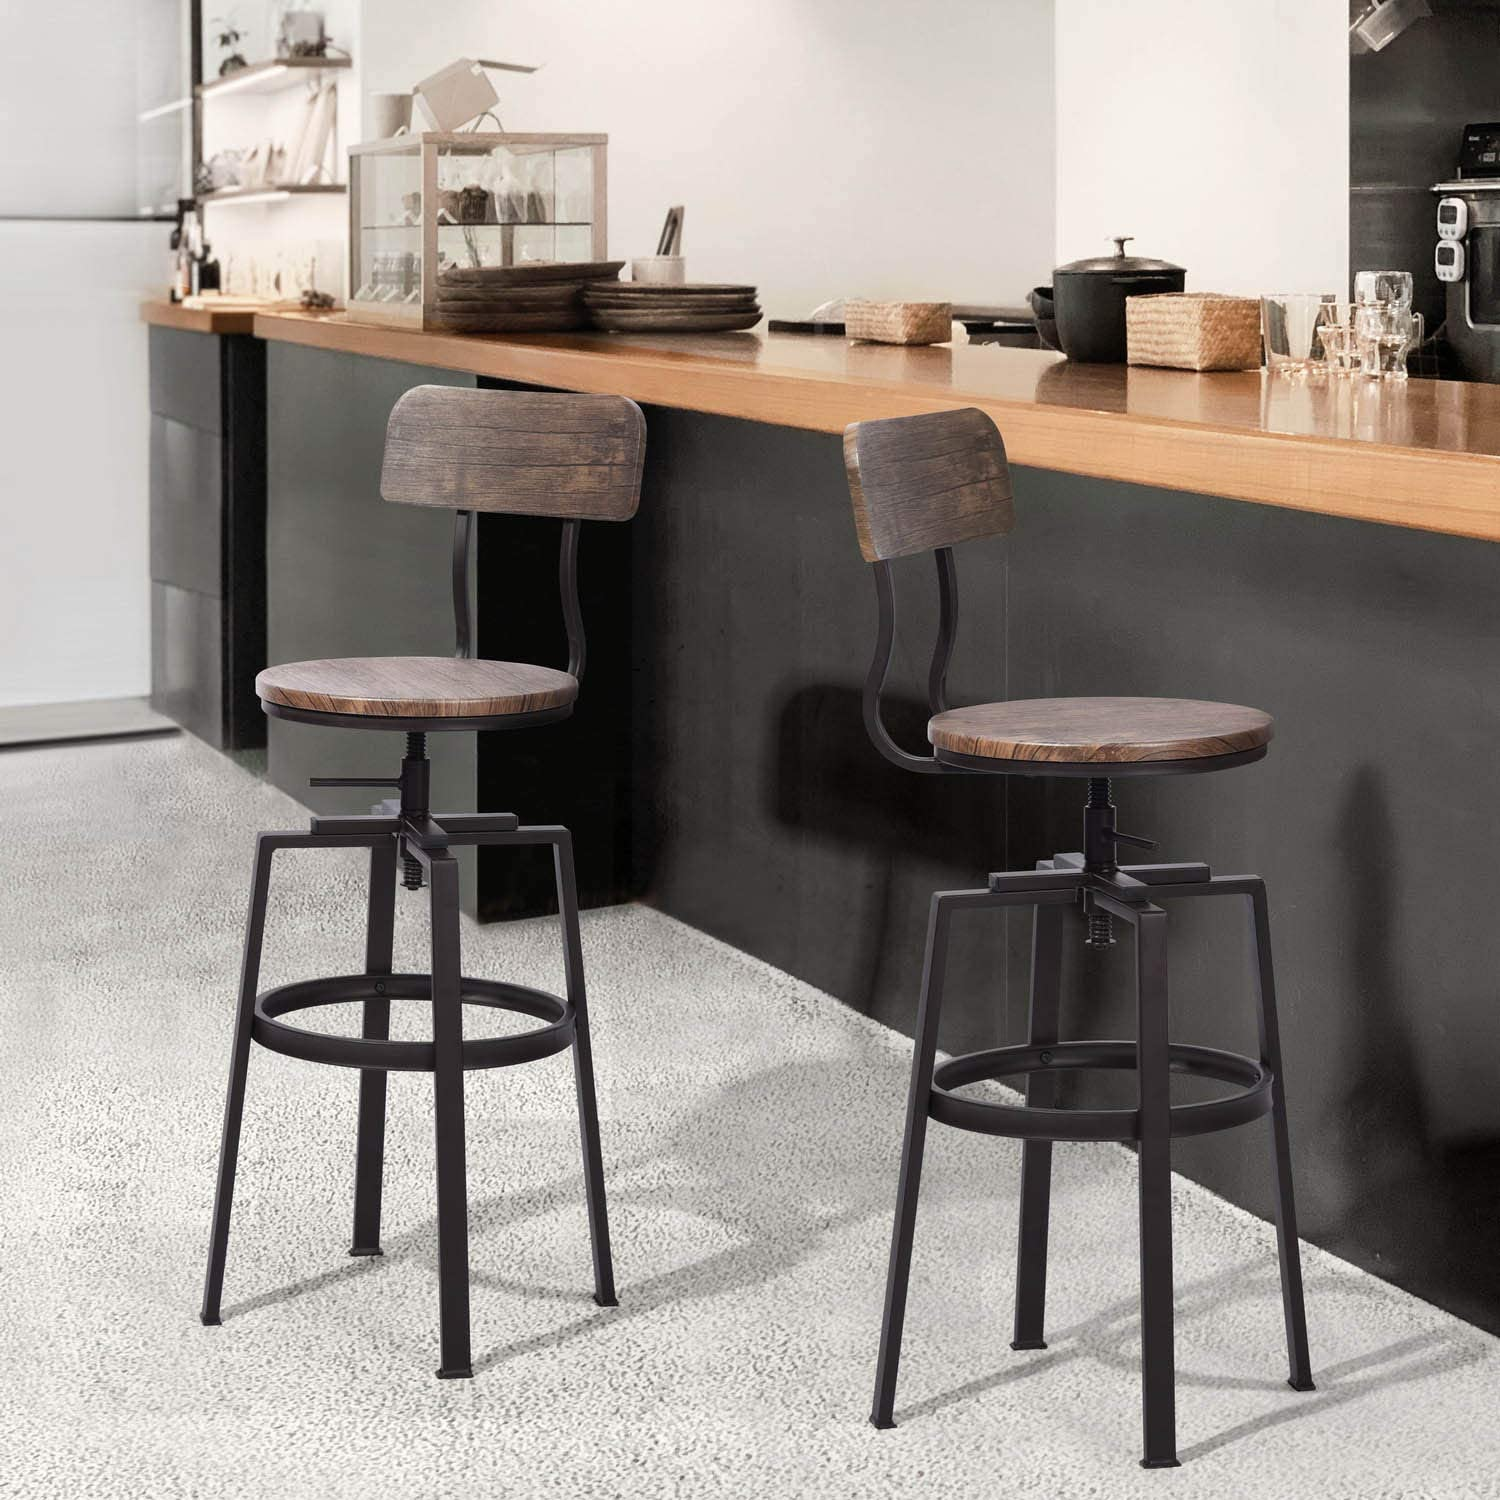 26 29 Height Adjustable Classic Swivel Barstool Brown For Bar Kitchen Island Houseinbox Industrial Bar Stool Set Of 2 Barstools Zuiverlucht Furniture